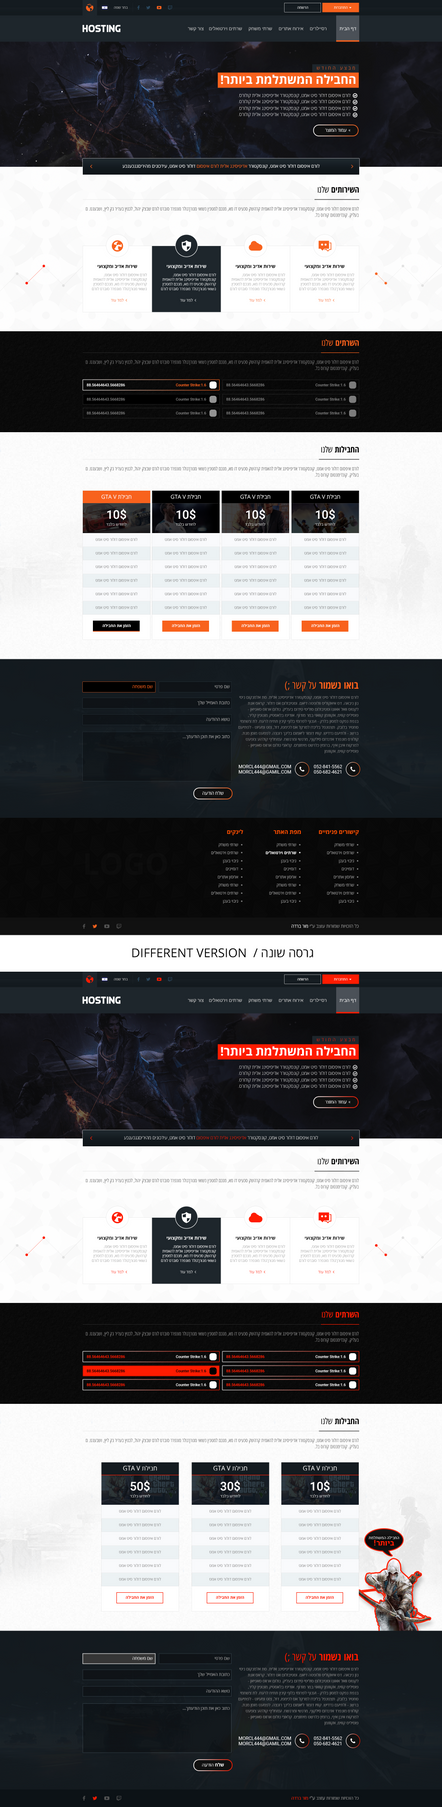 Website Design -  Hosting games - For Sale! by MorBarda